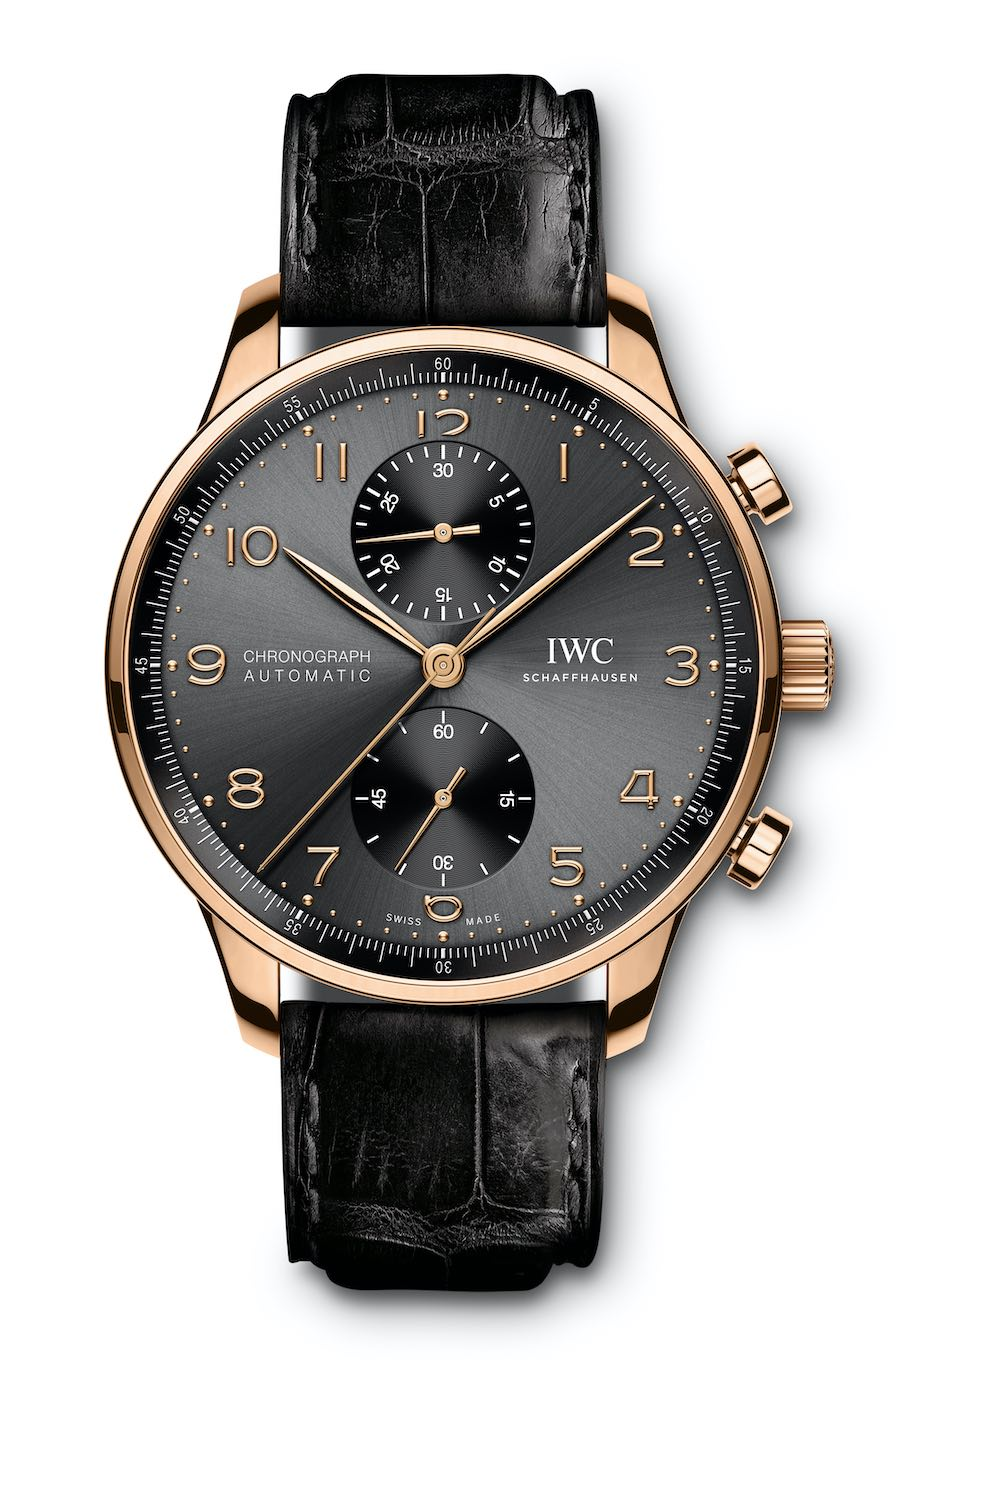 IWC Portugieser Chronograph iw3716 in-house calibre 69335 - iw371610